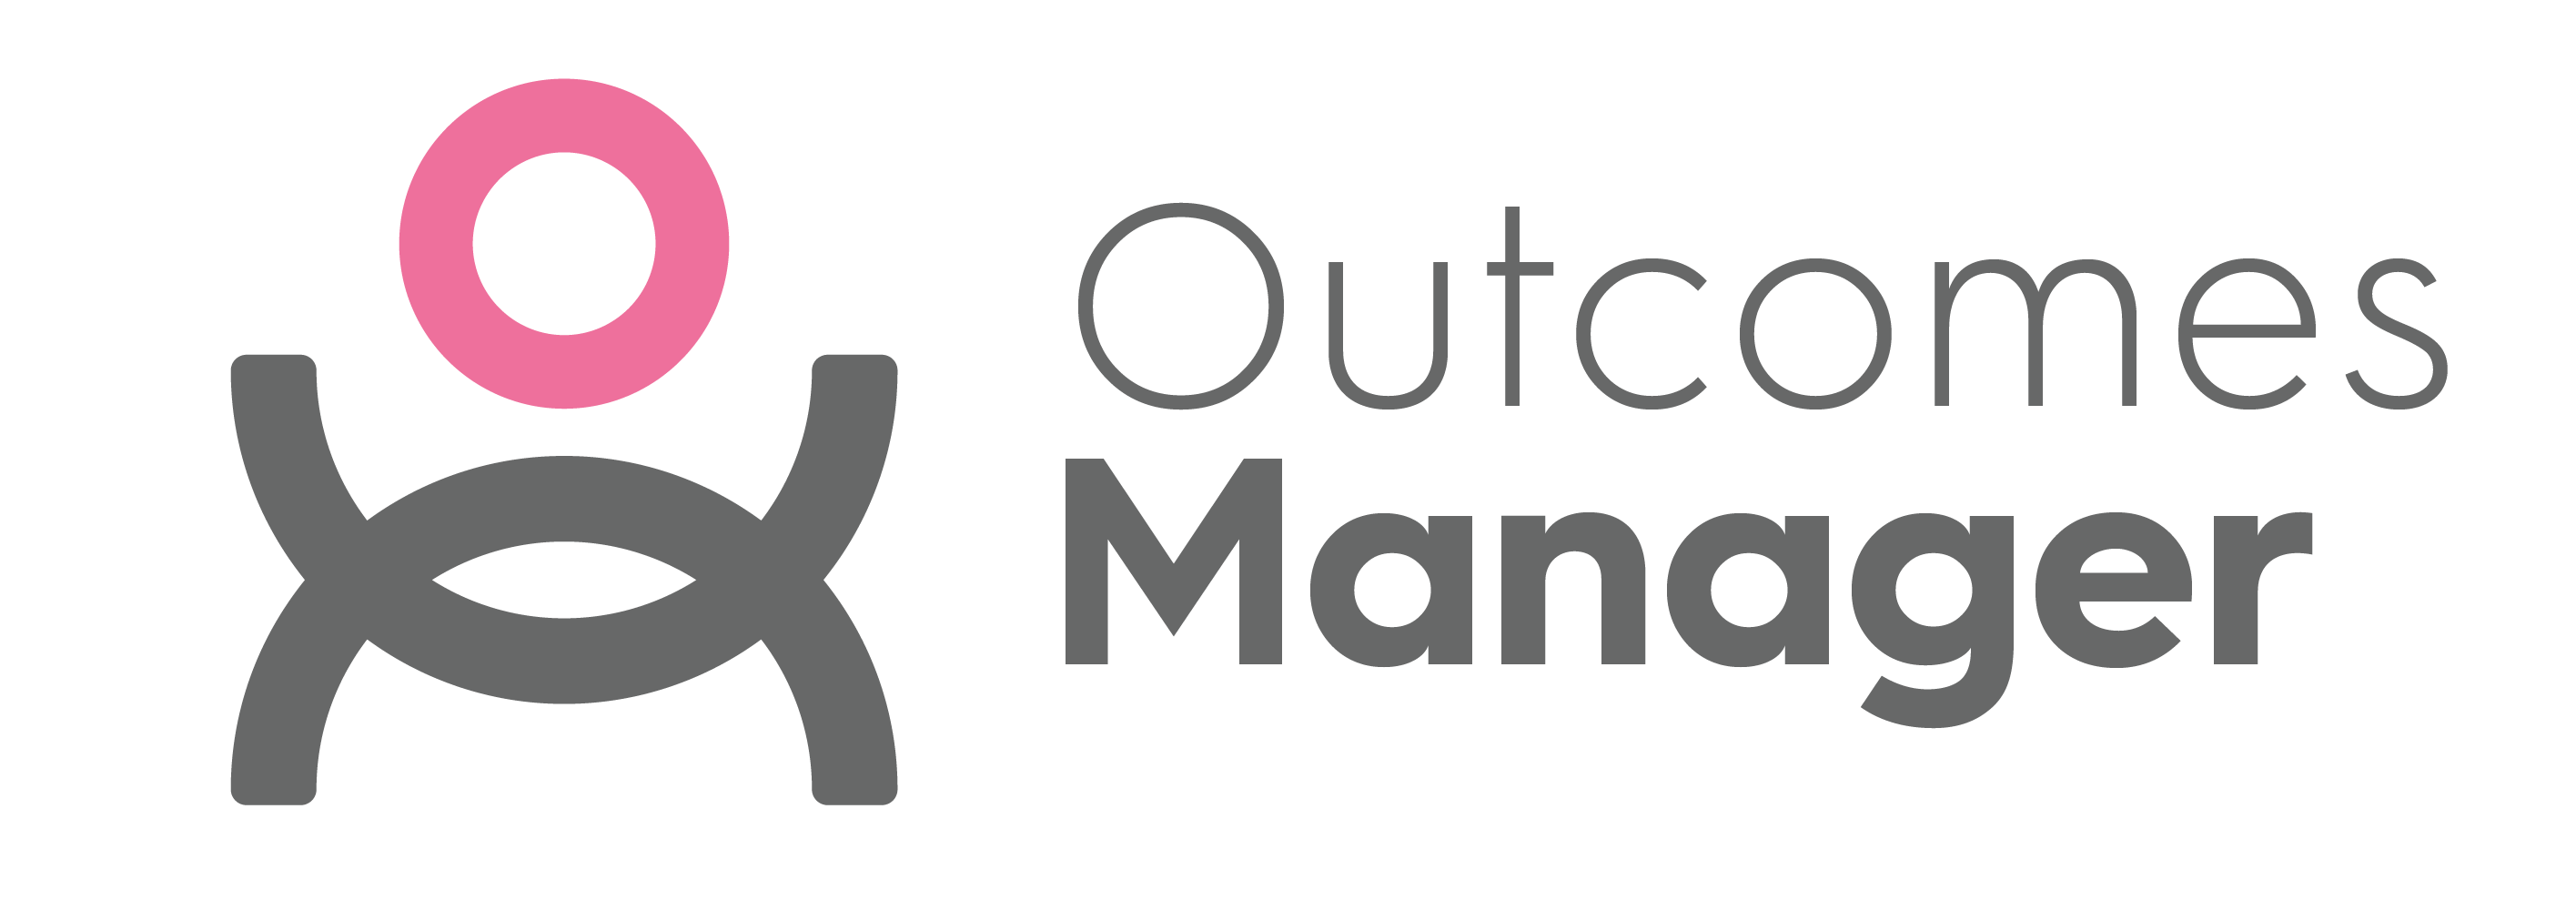 CHS_Outcomes Manager logo